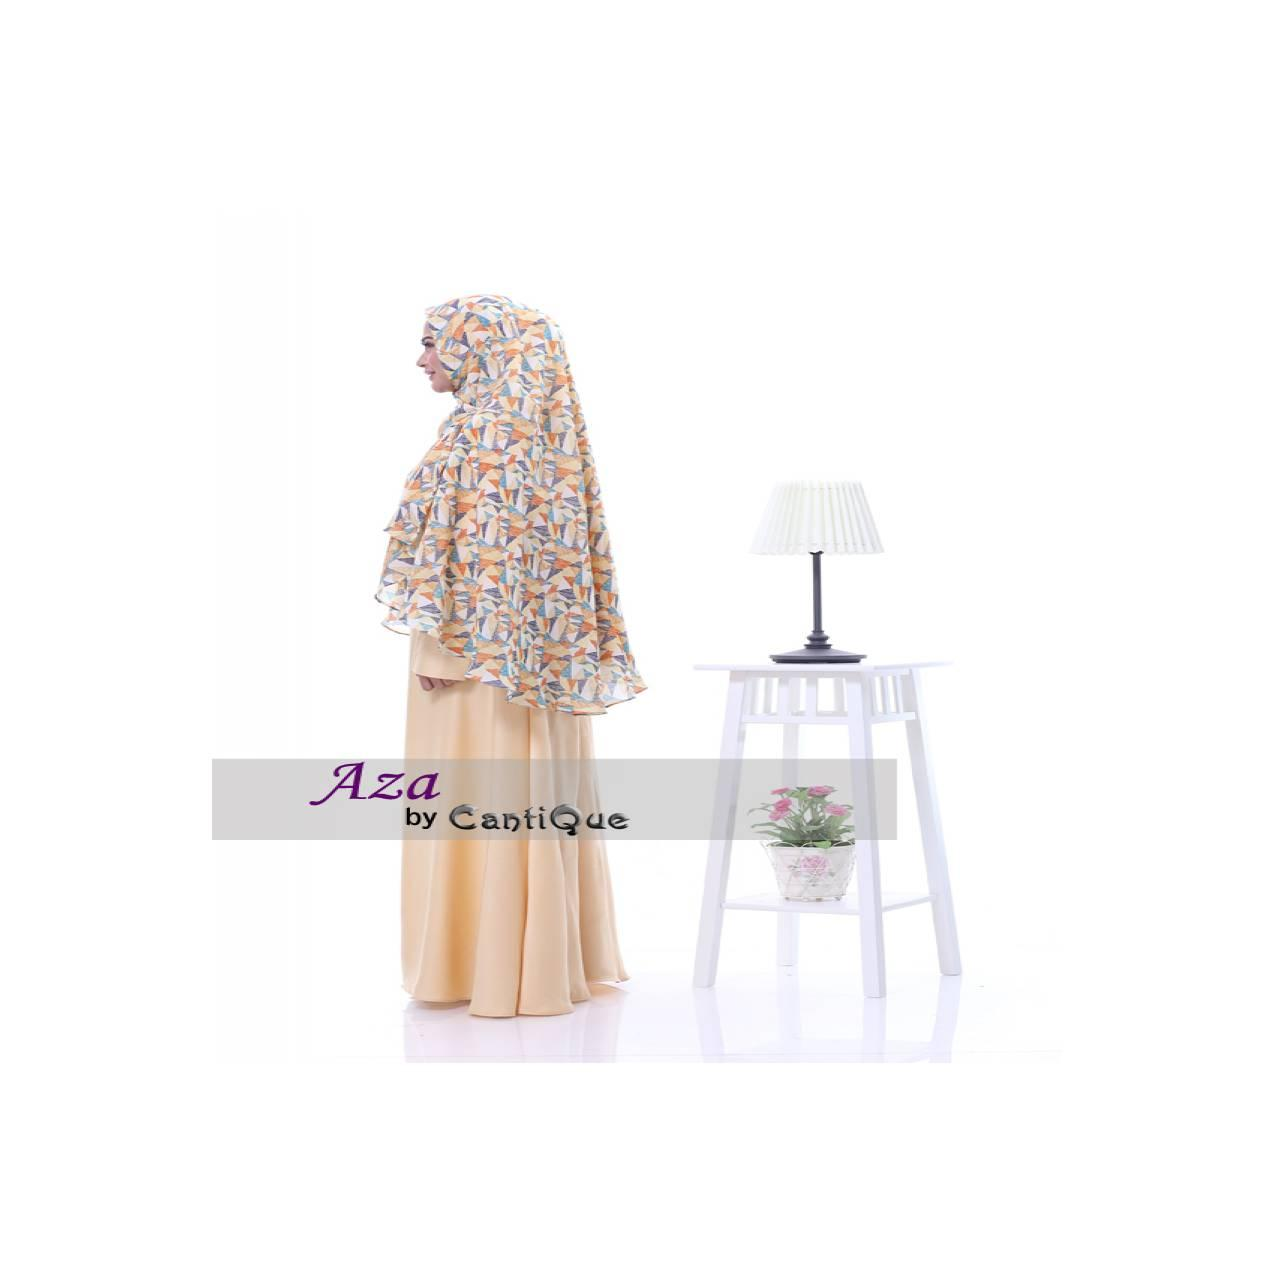 Safeera Cantique Gamis Syar'i Safeera - Cream Muda